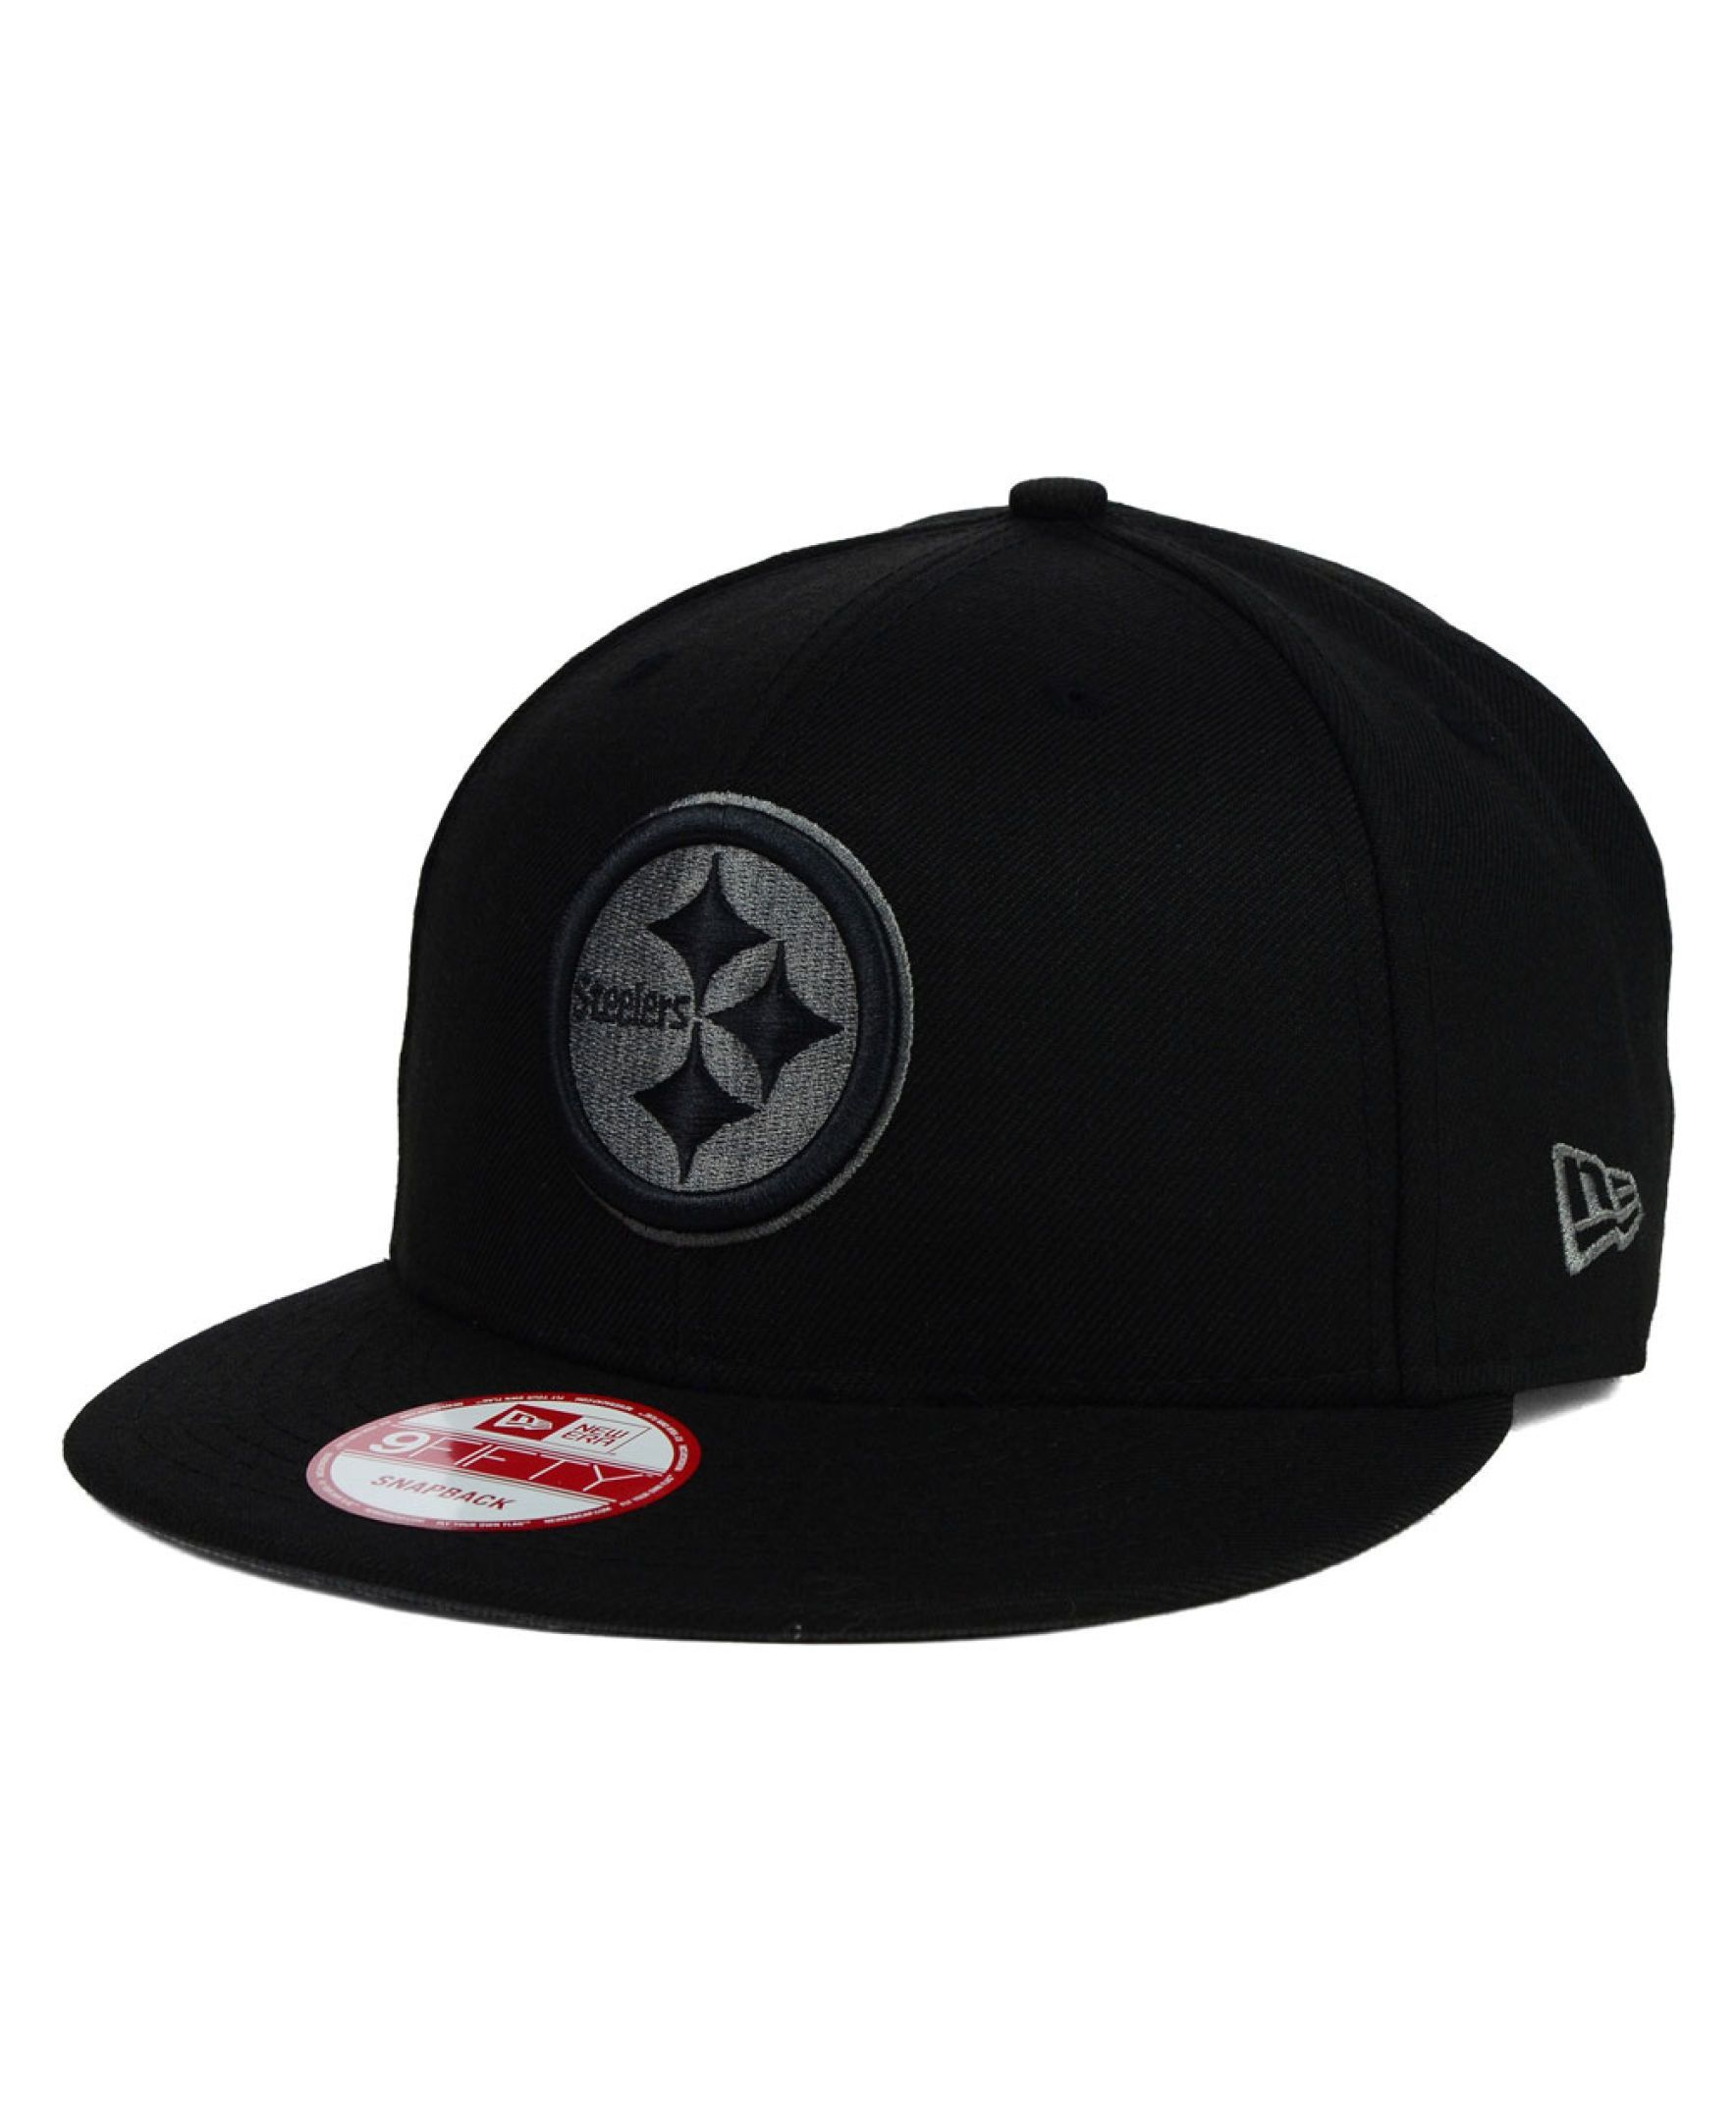 New Era Pittsburgh Steelers Black Gray 9FIFTY Snapback Cap